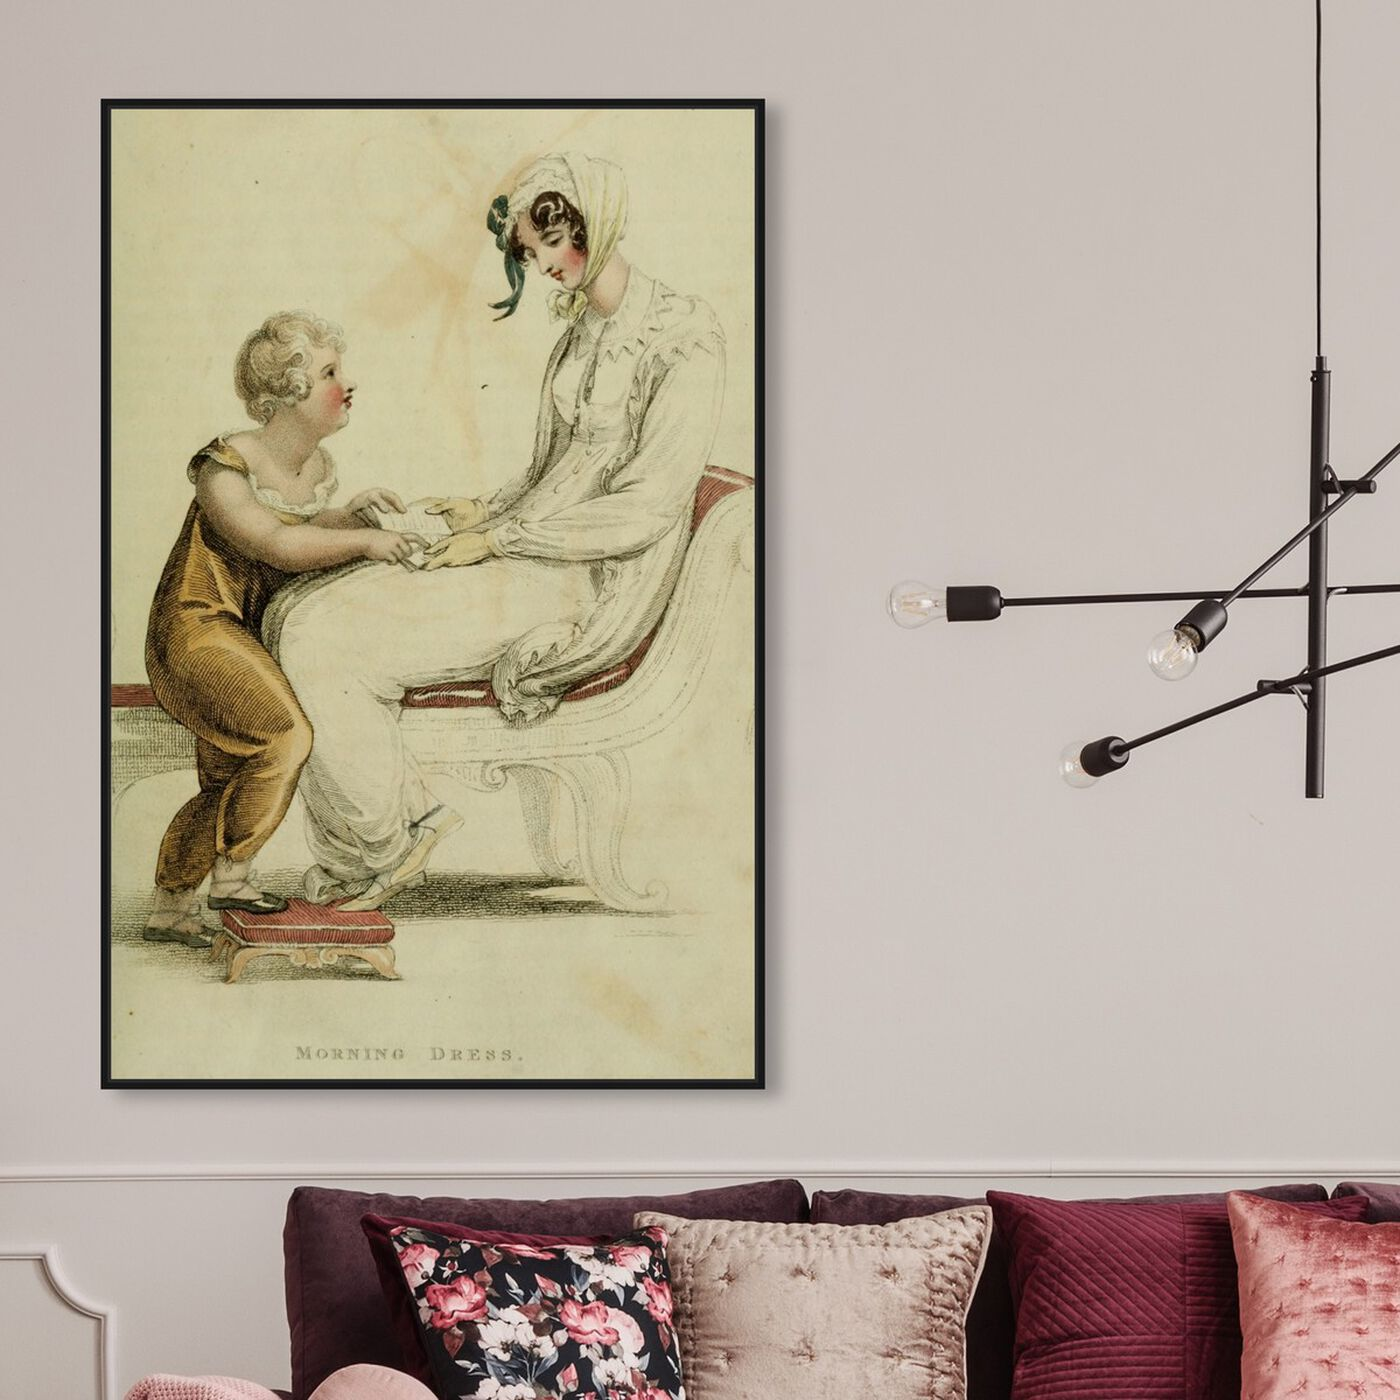 Hanging view of Morning Dress - The Art Cabinet featuring classic and figurative and realism art.